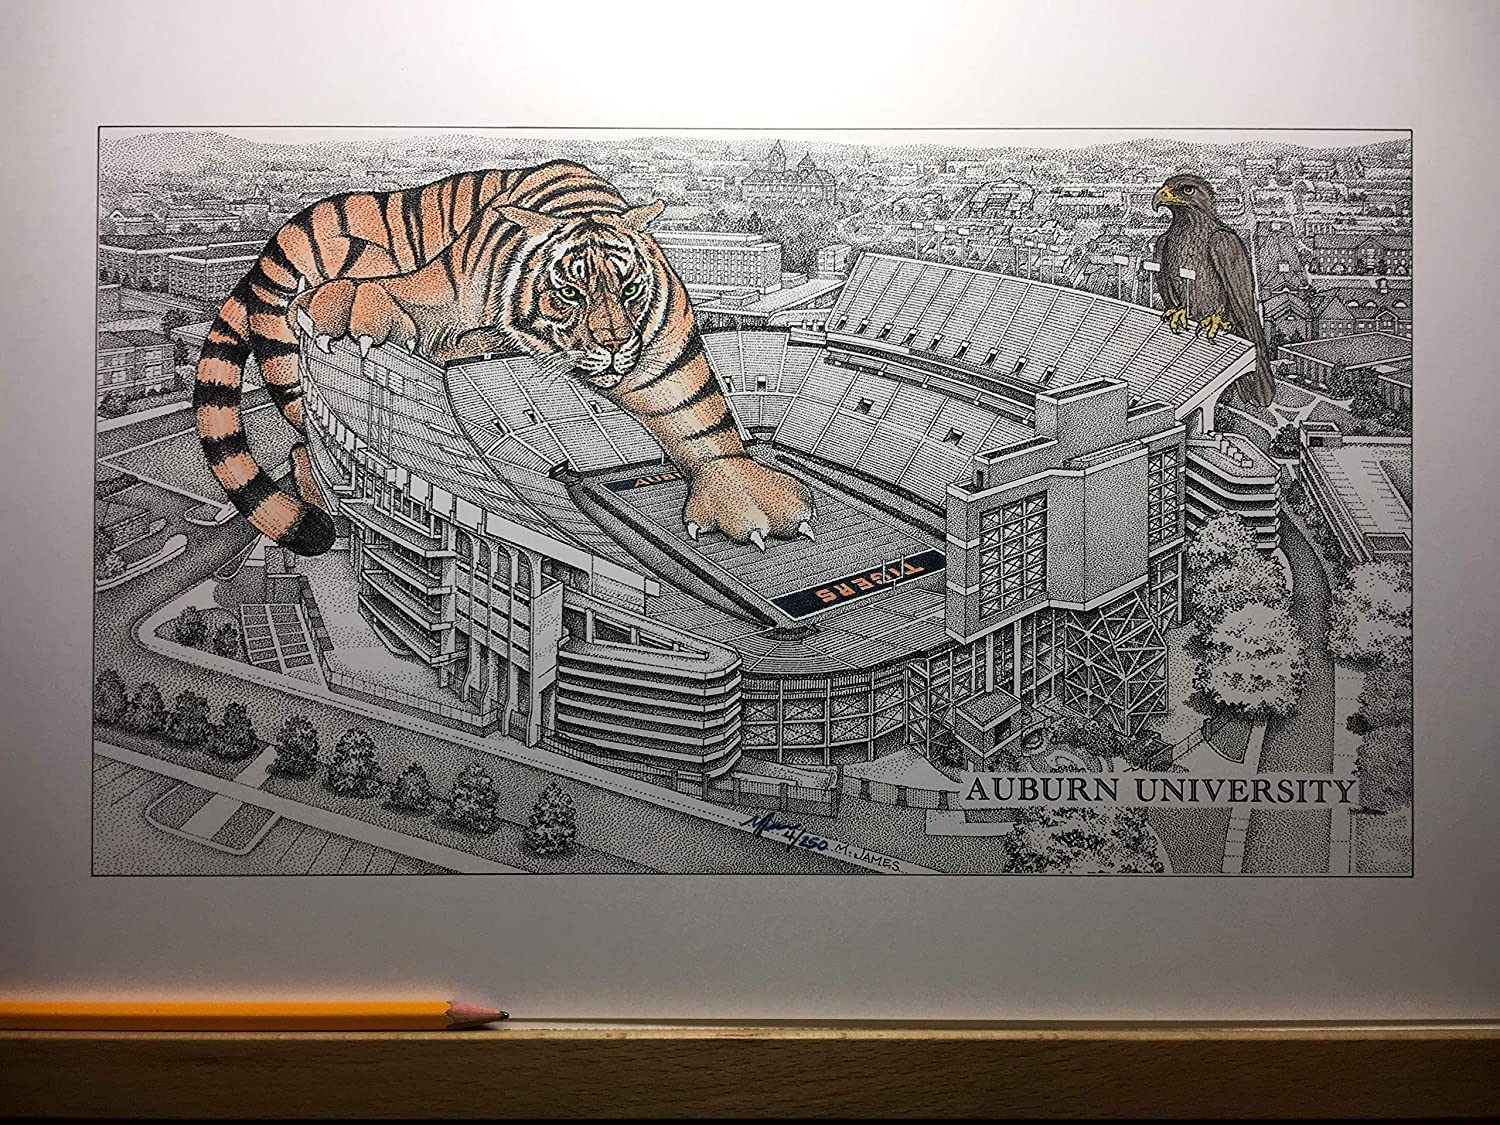 Auburn football stadium with hand-colored tiger -11'x17' pen & ink drawing